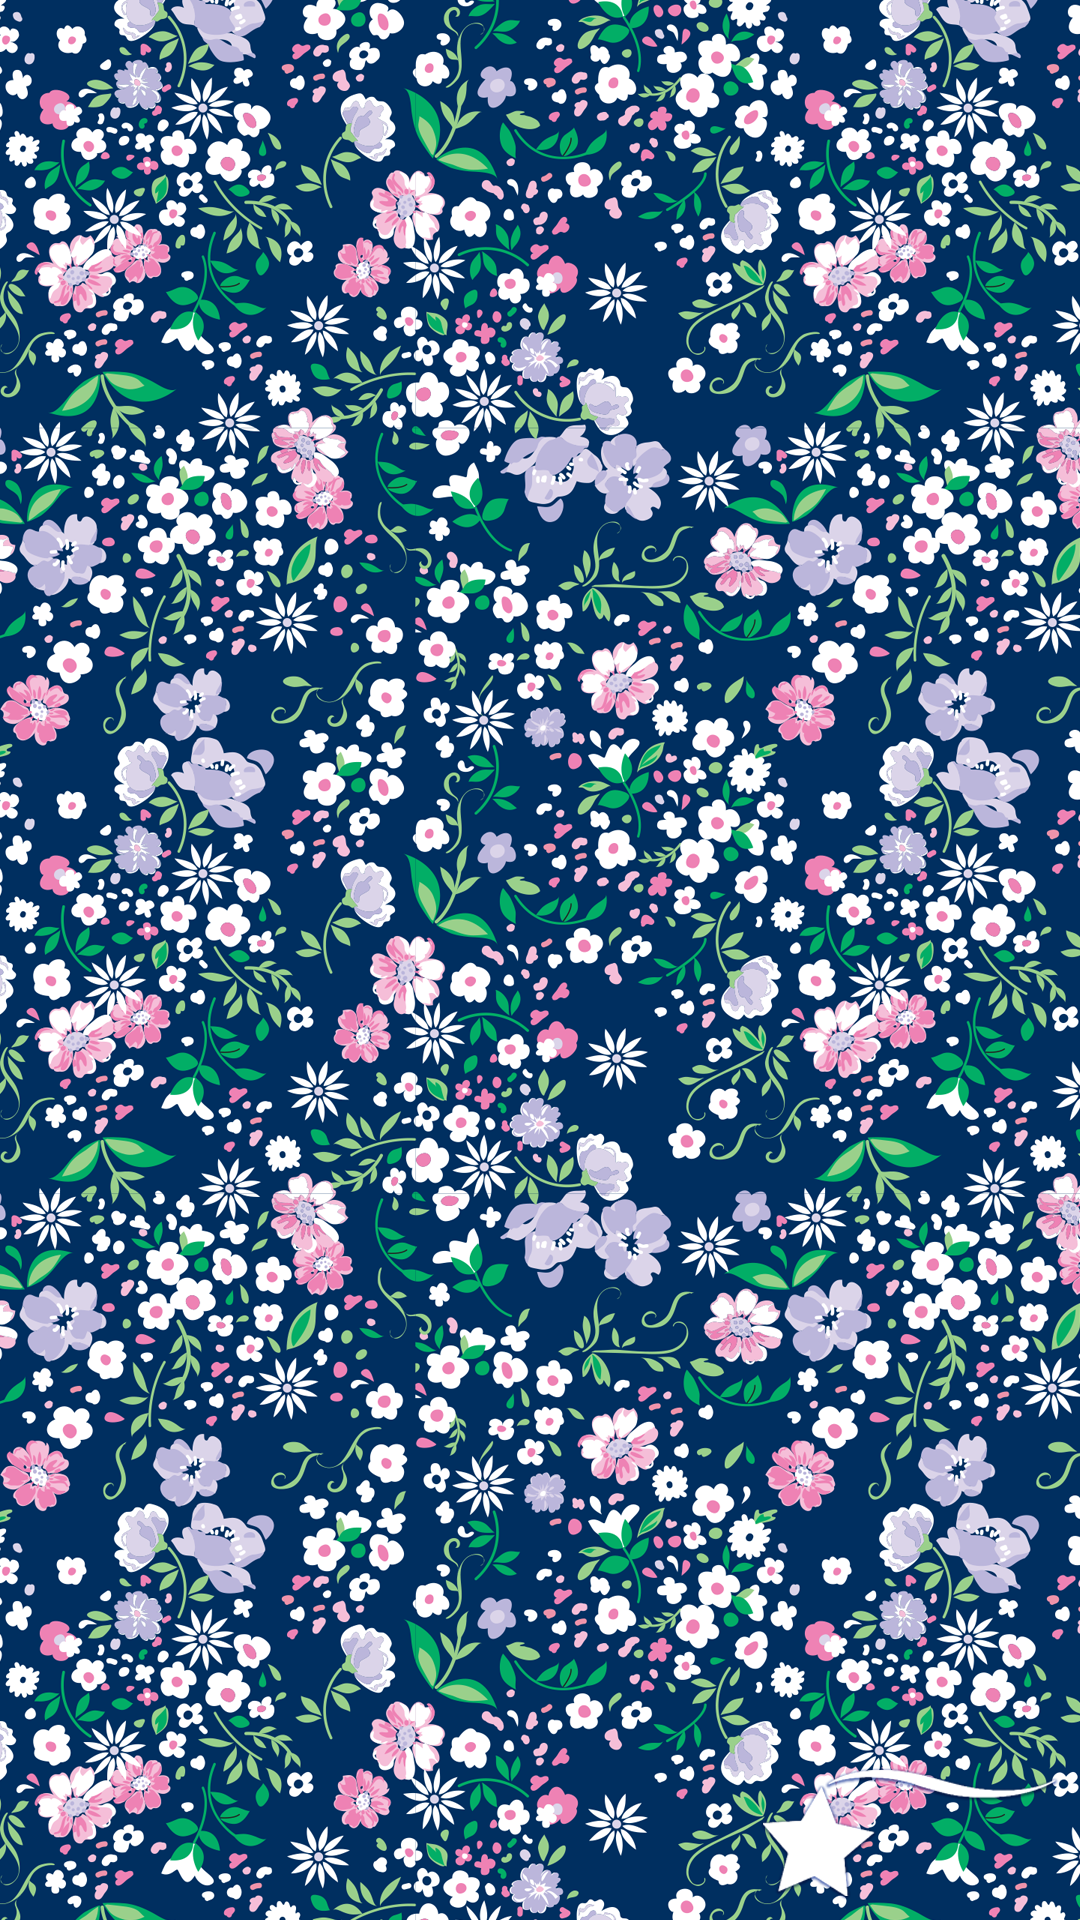 Destira Phone Wallpaper To Match Our Ditsy Floral Woven Back Leotard Flower Phone Wallpaper Floral Wallpaper Flower Wallpaper